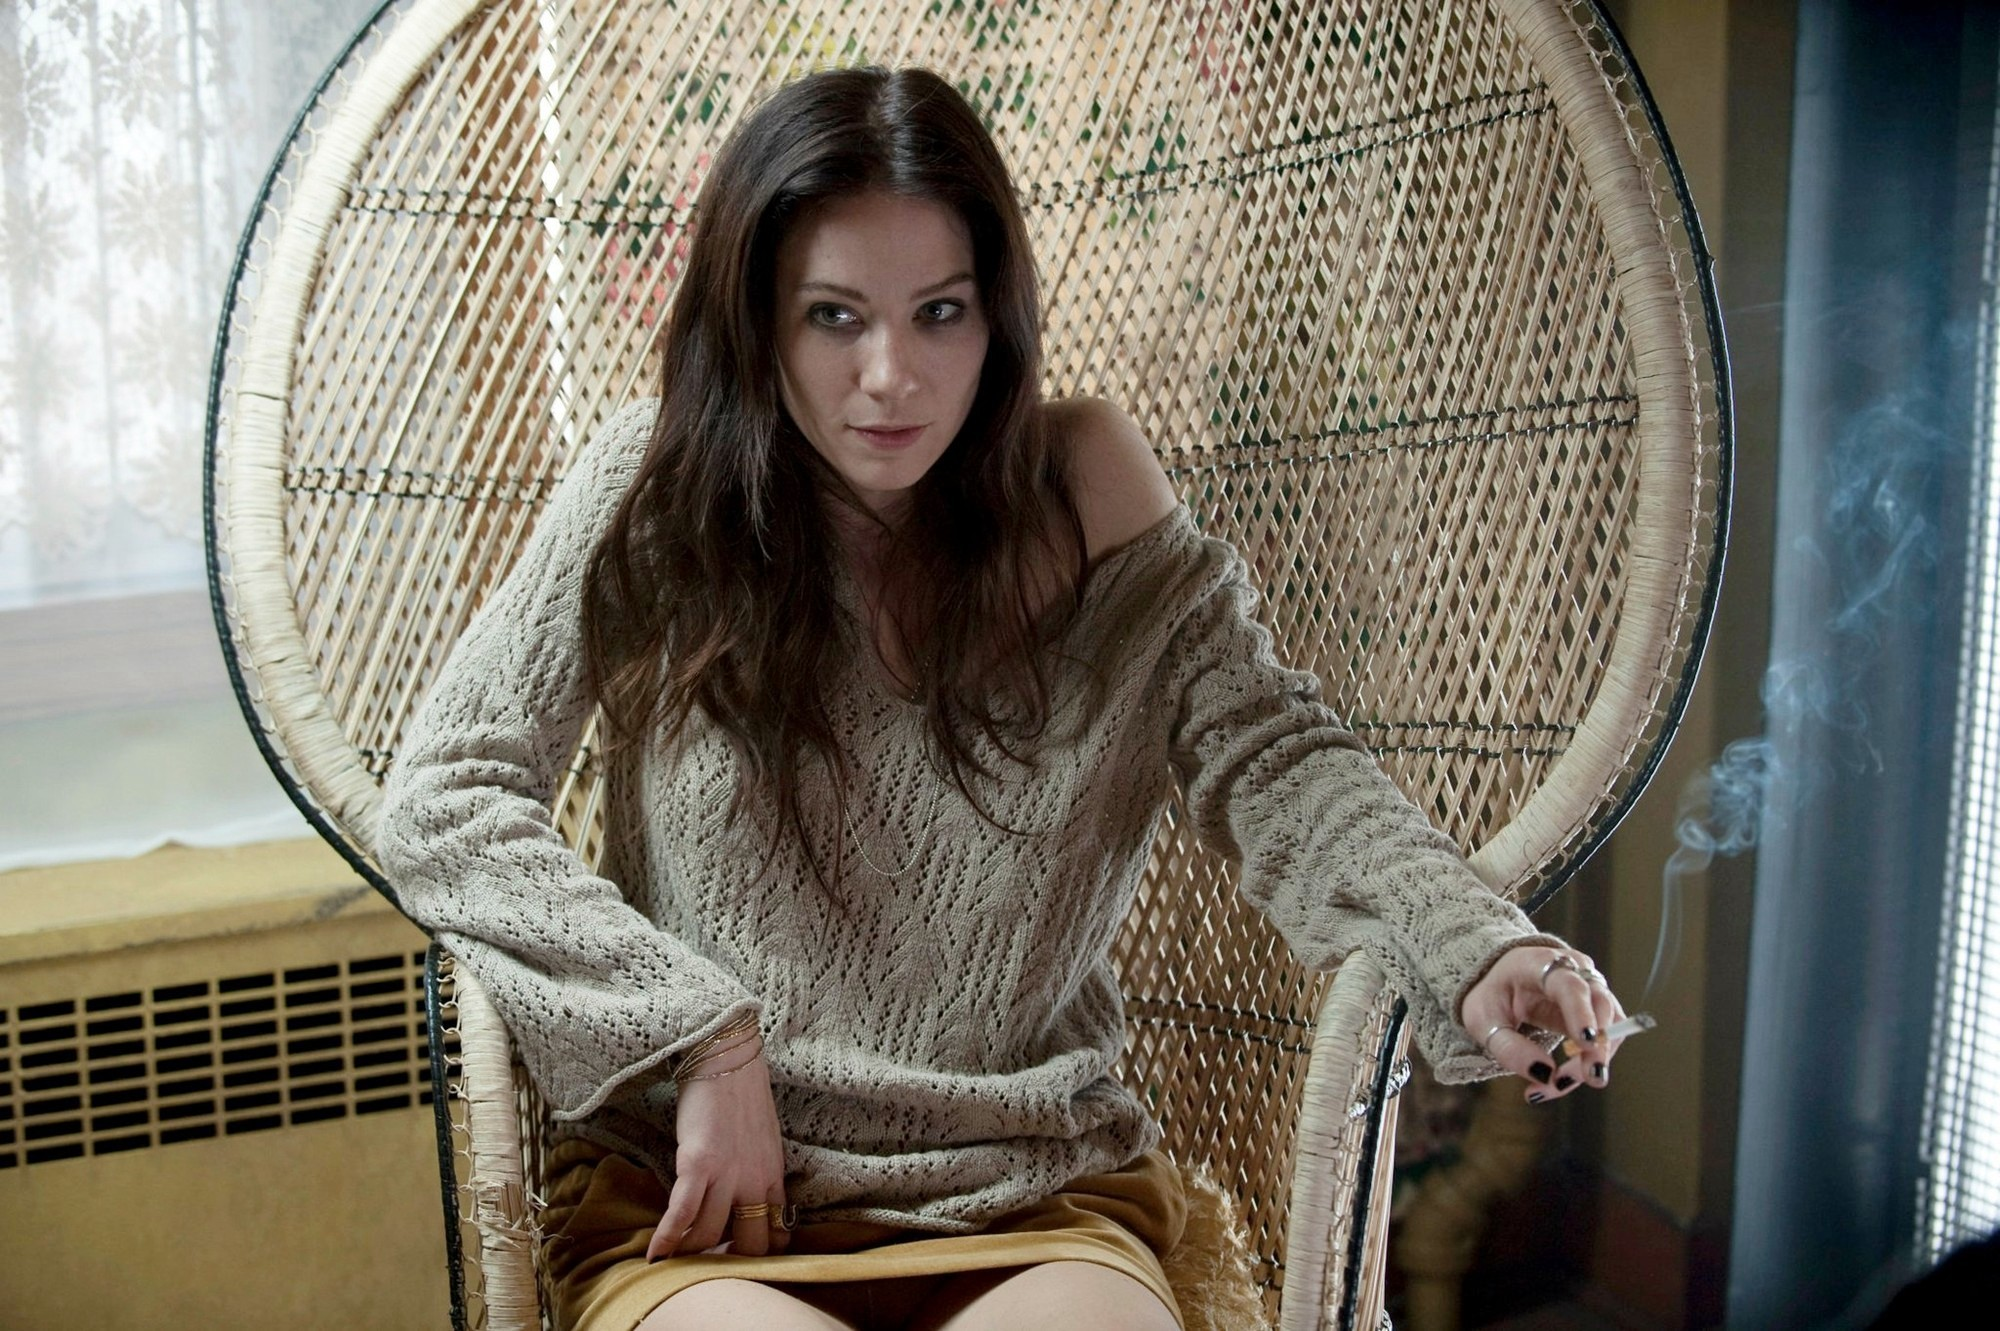 Angels crest picture 7 for Lynn collins hot pic